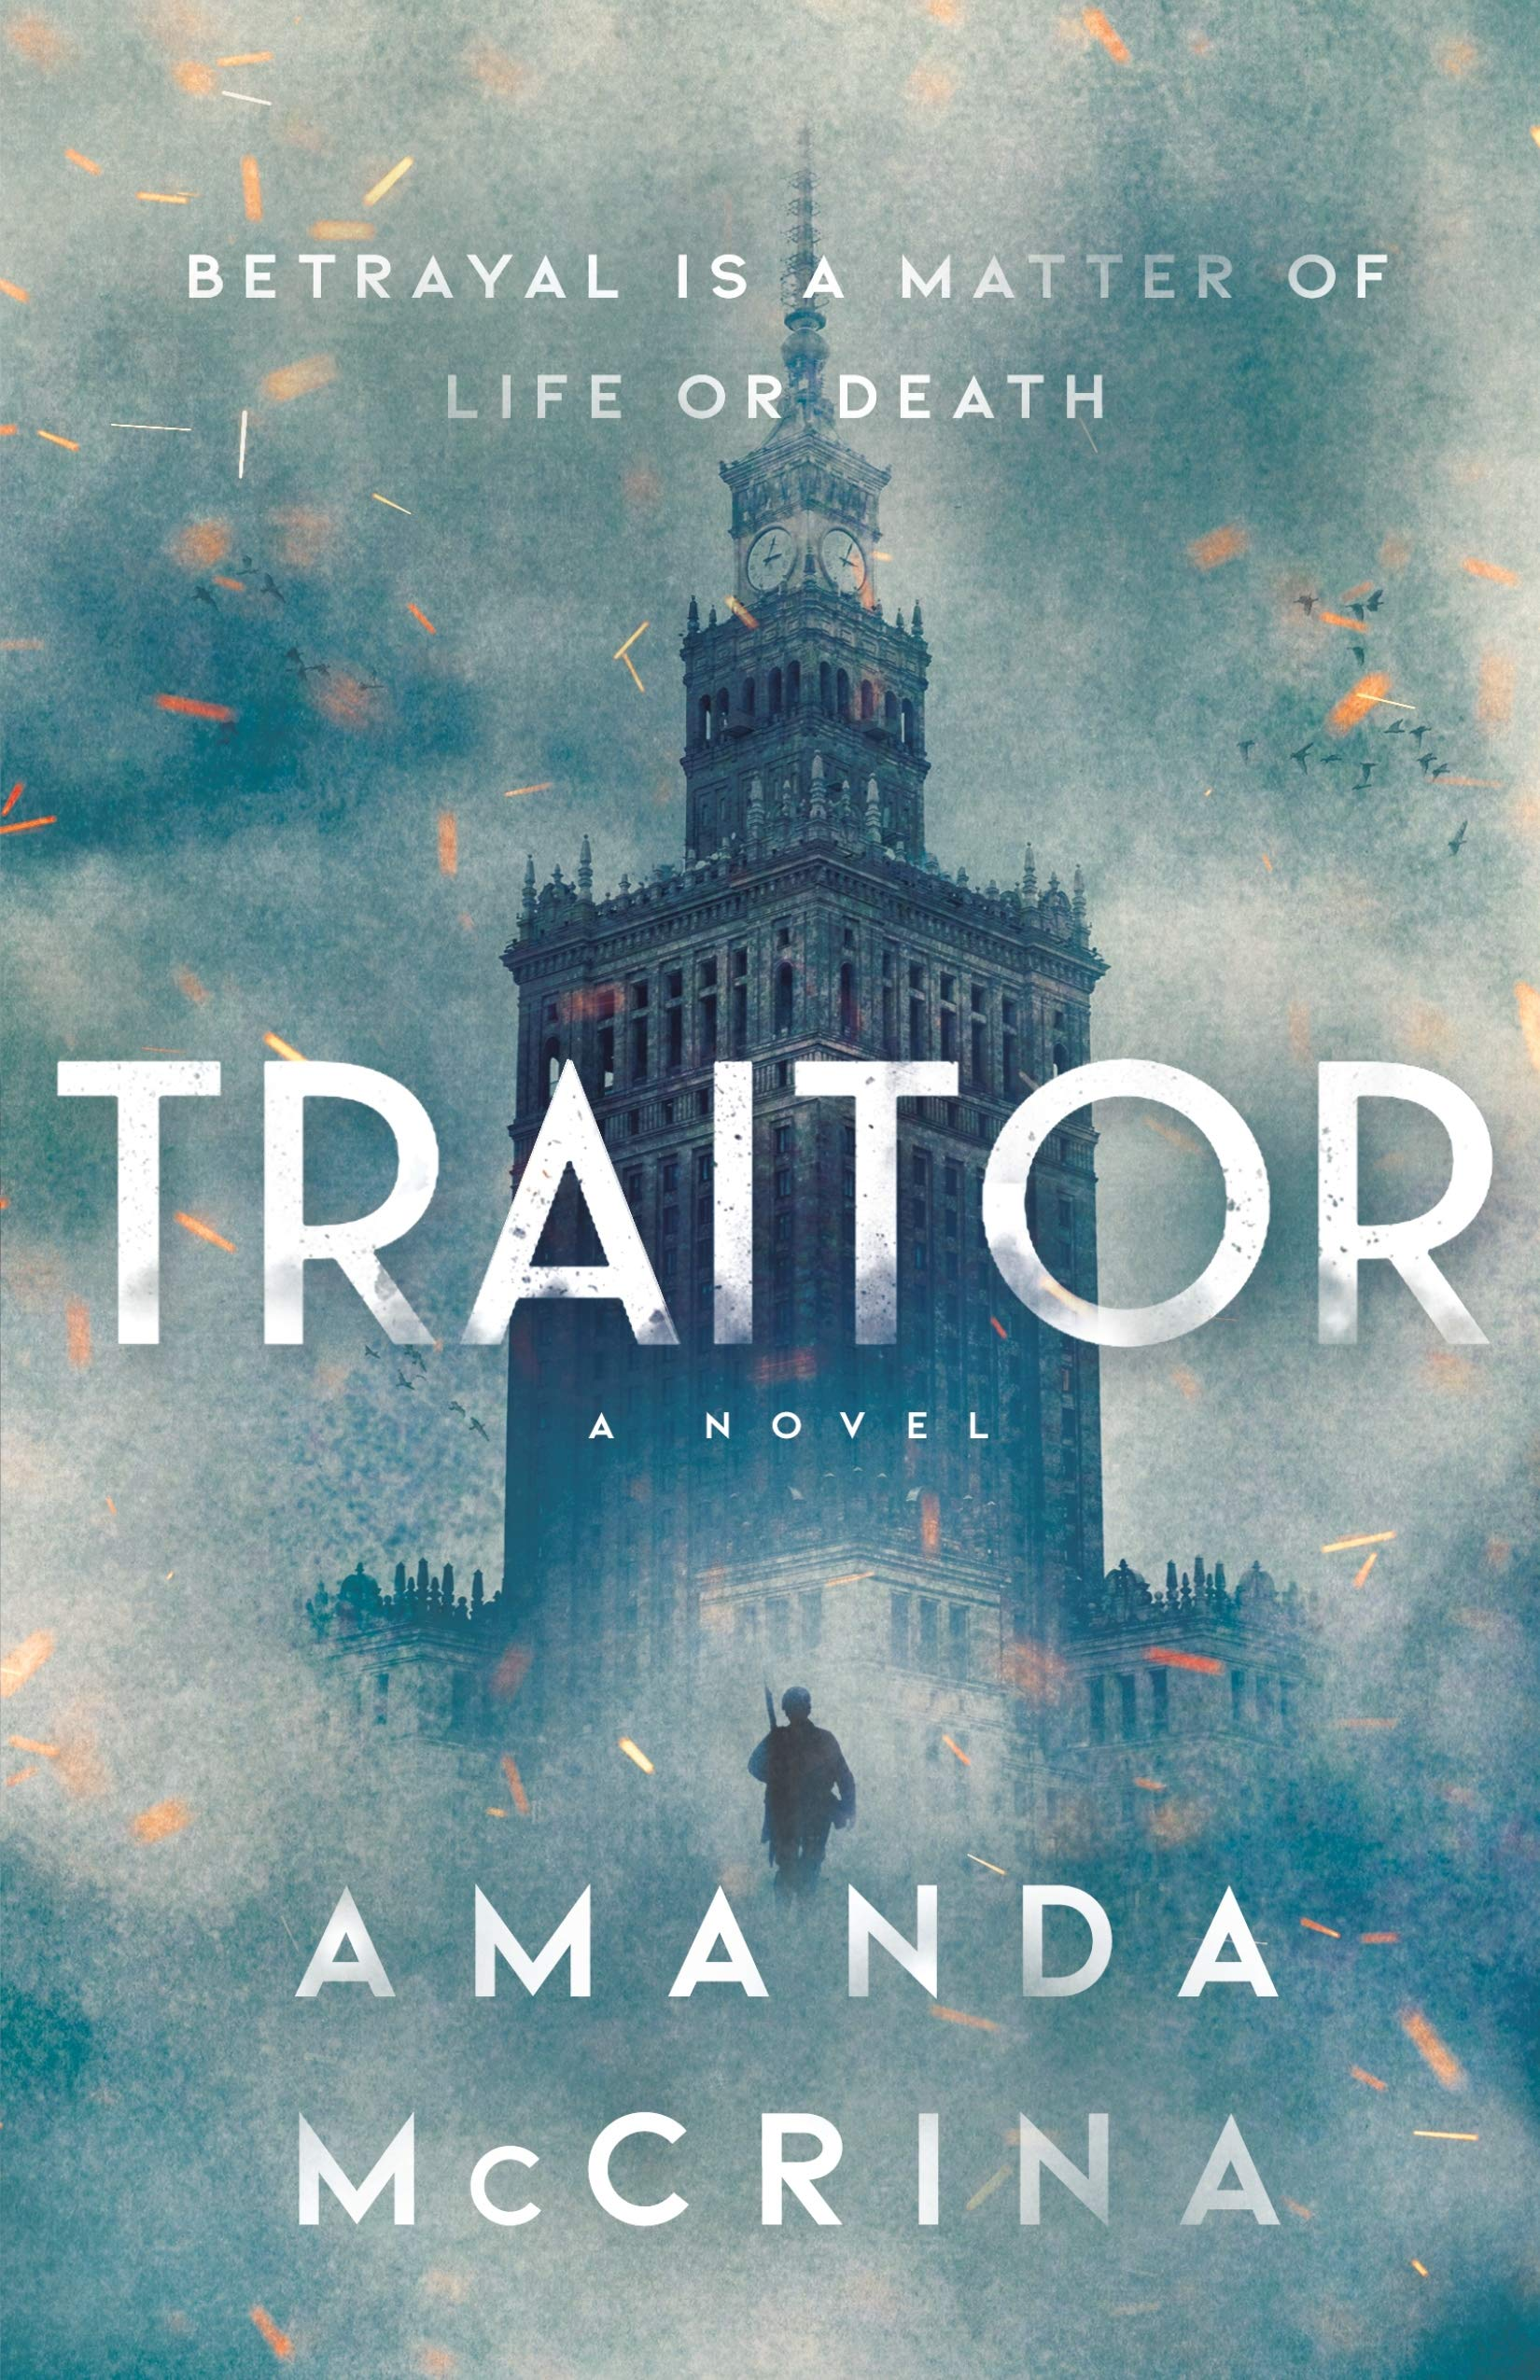 Traitor: A Novel